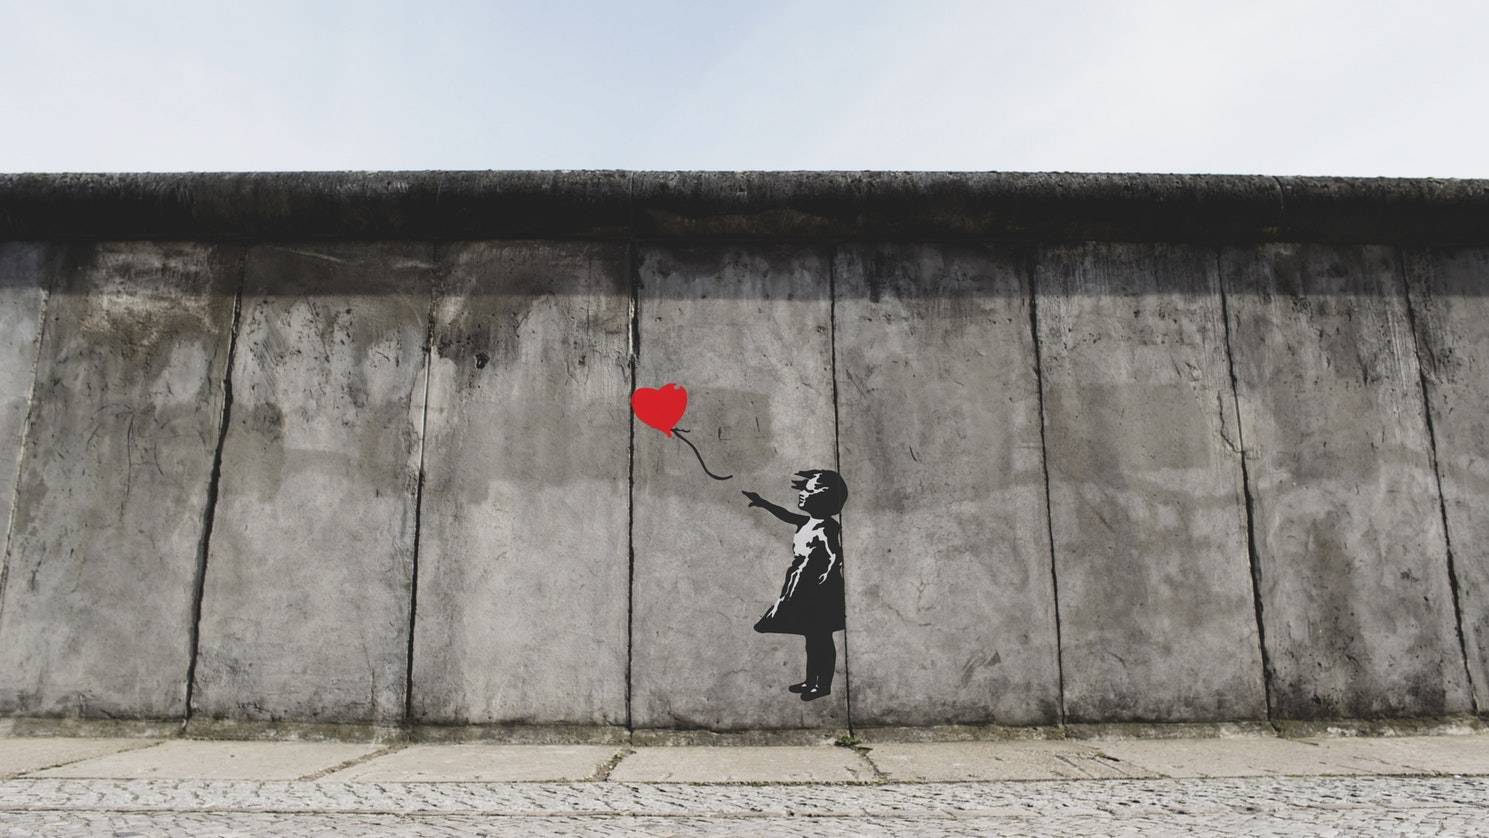 Banksy. Image of a girl with a red balloon on a concrete wall